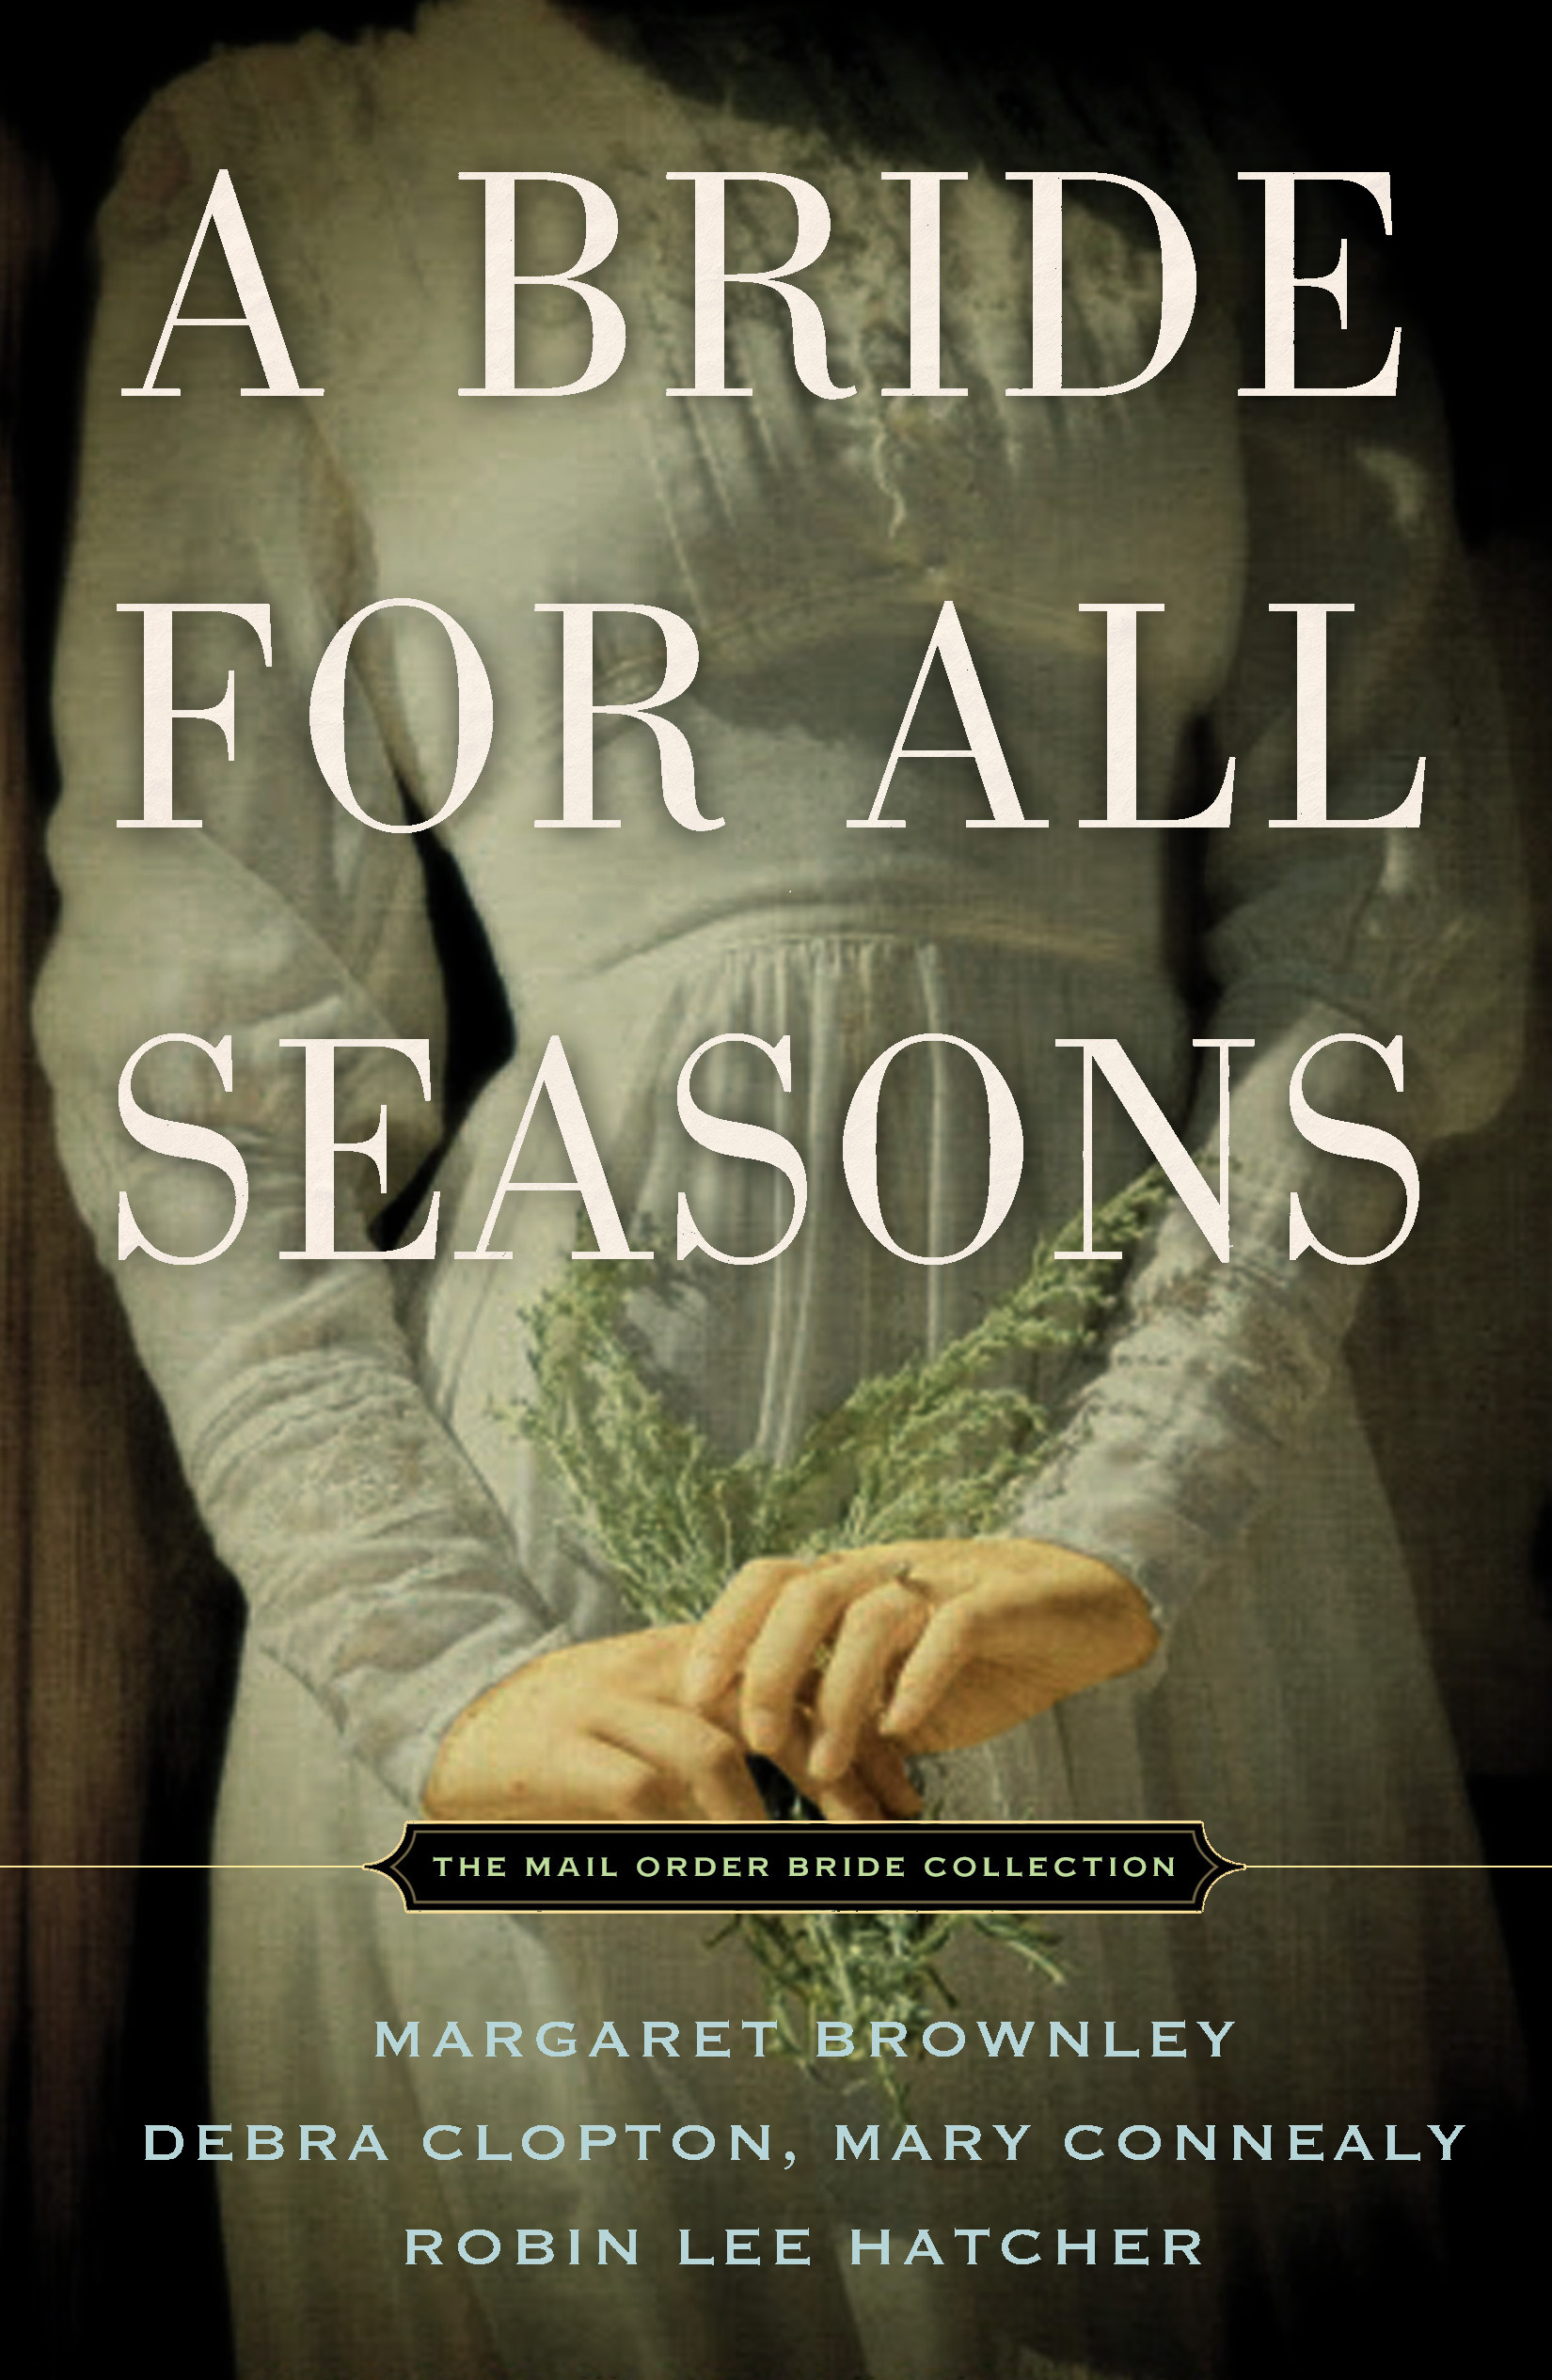 A Bride For All Seasons (Mail Order Bride Collection)